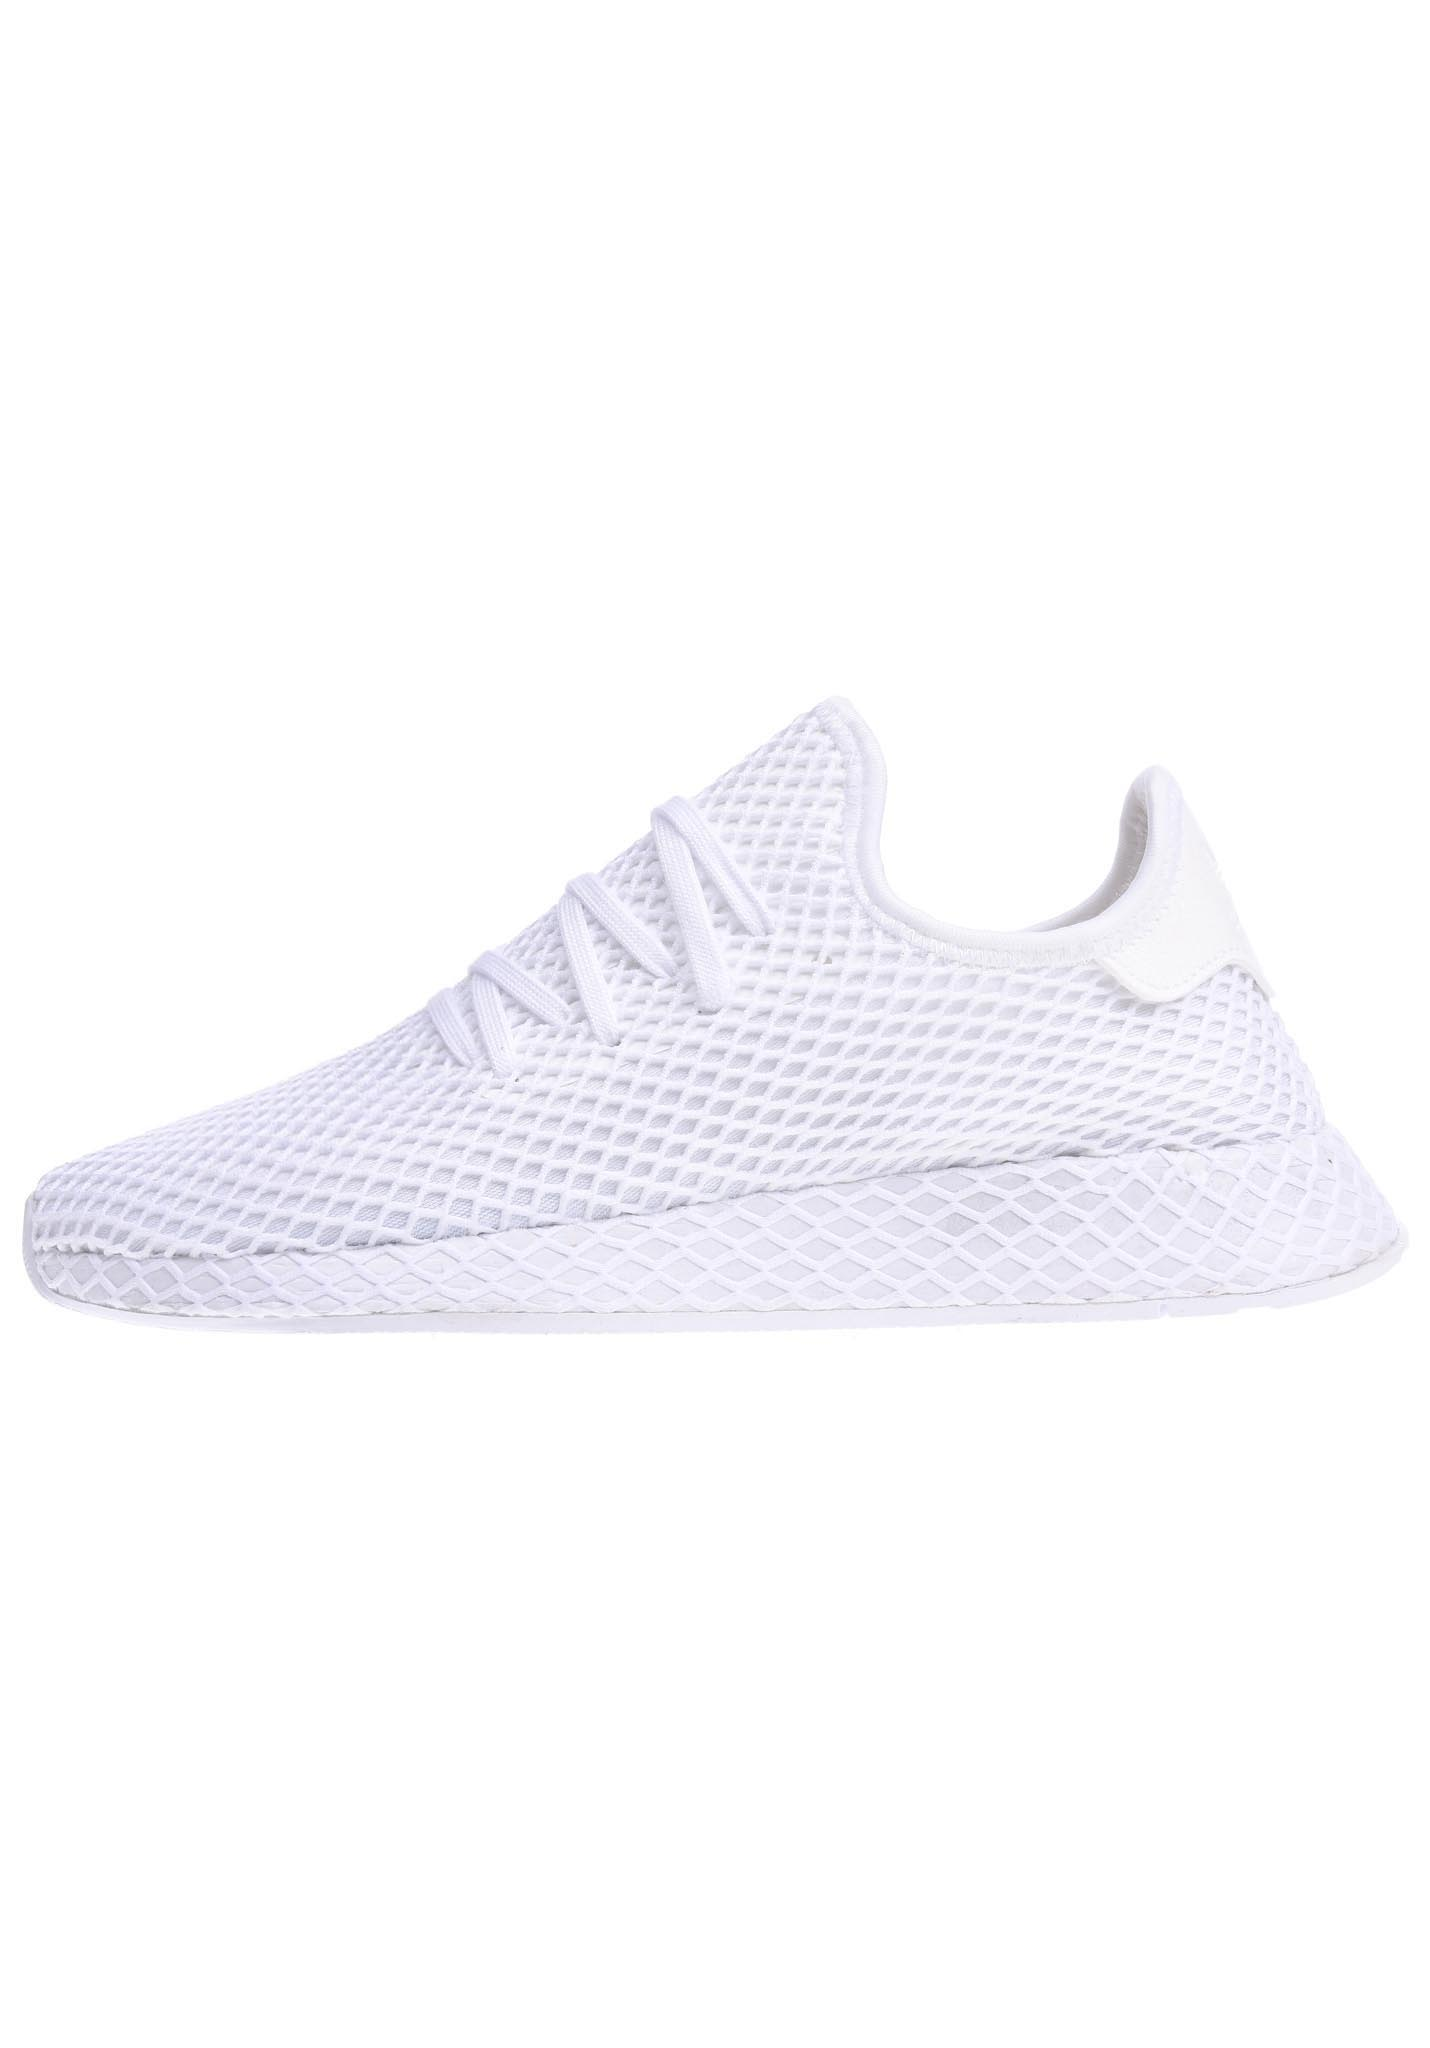 promo code 4db58 2c0d7 ADIDAS ORIGINALS Deerupt Runner - Sneakers for Men - White - Planet Sports